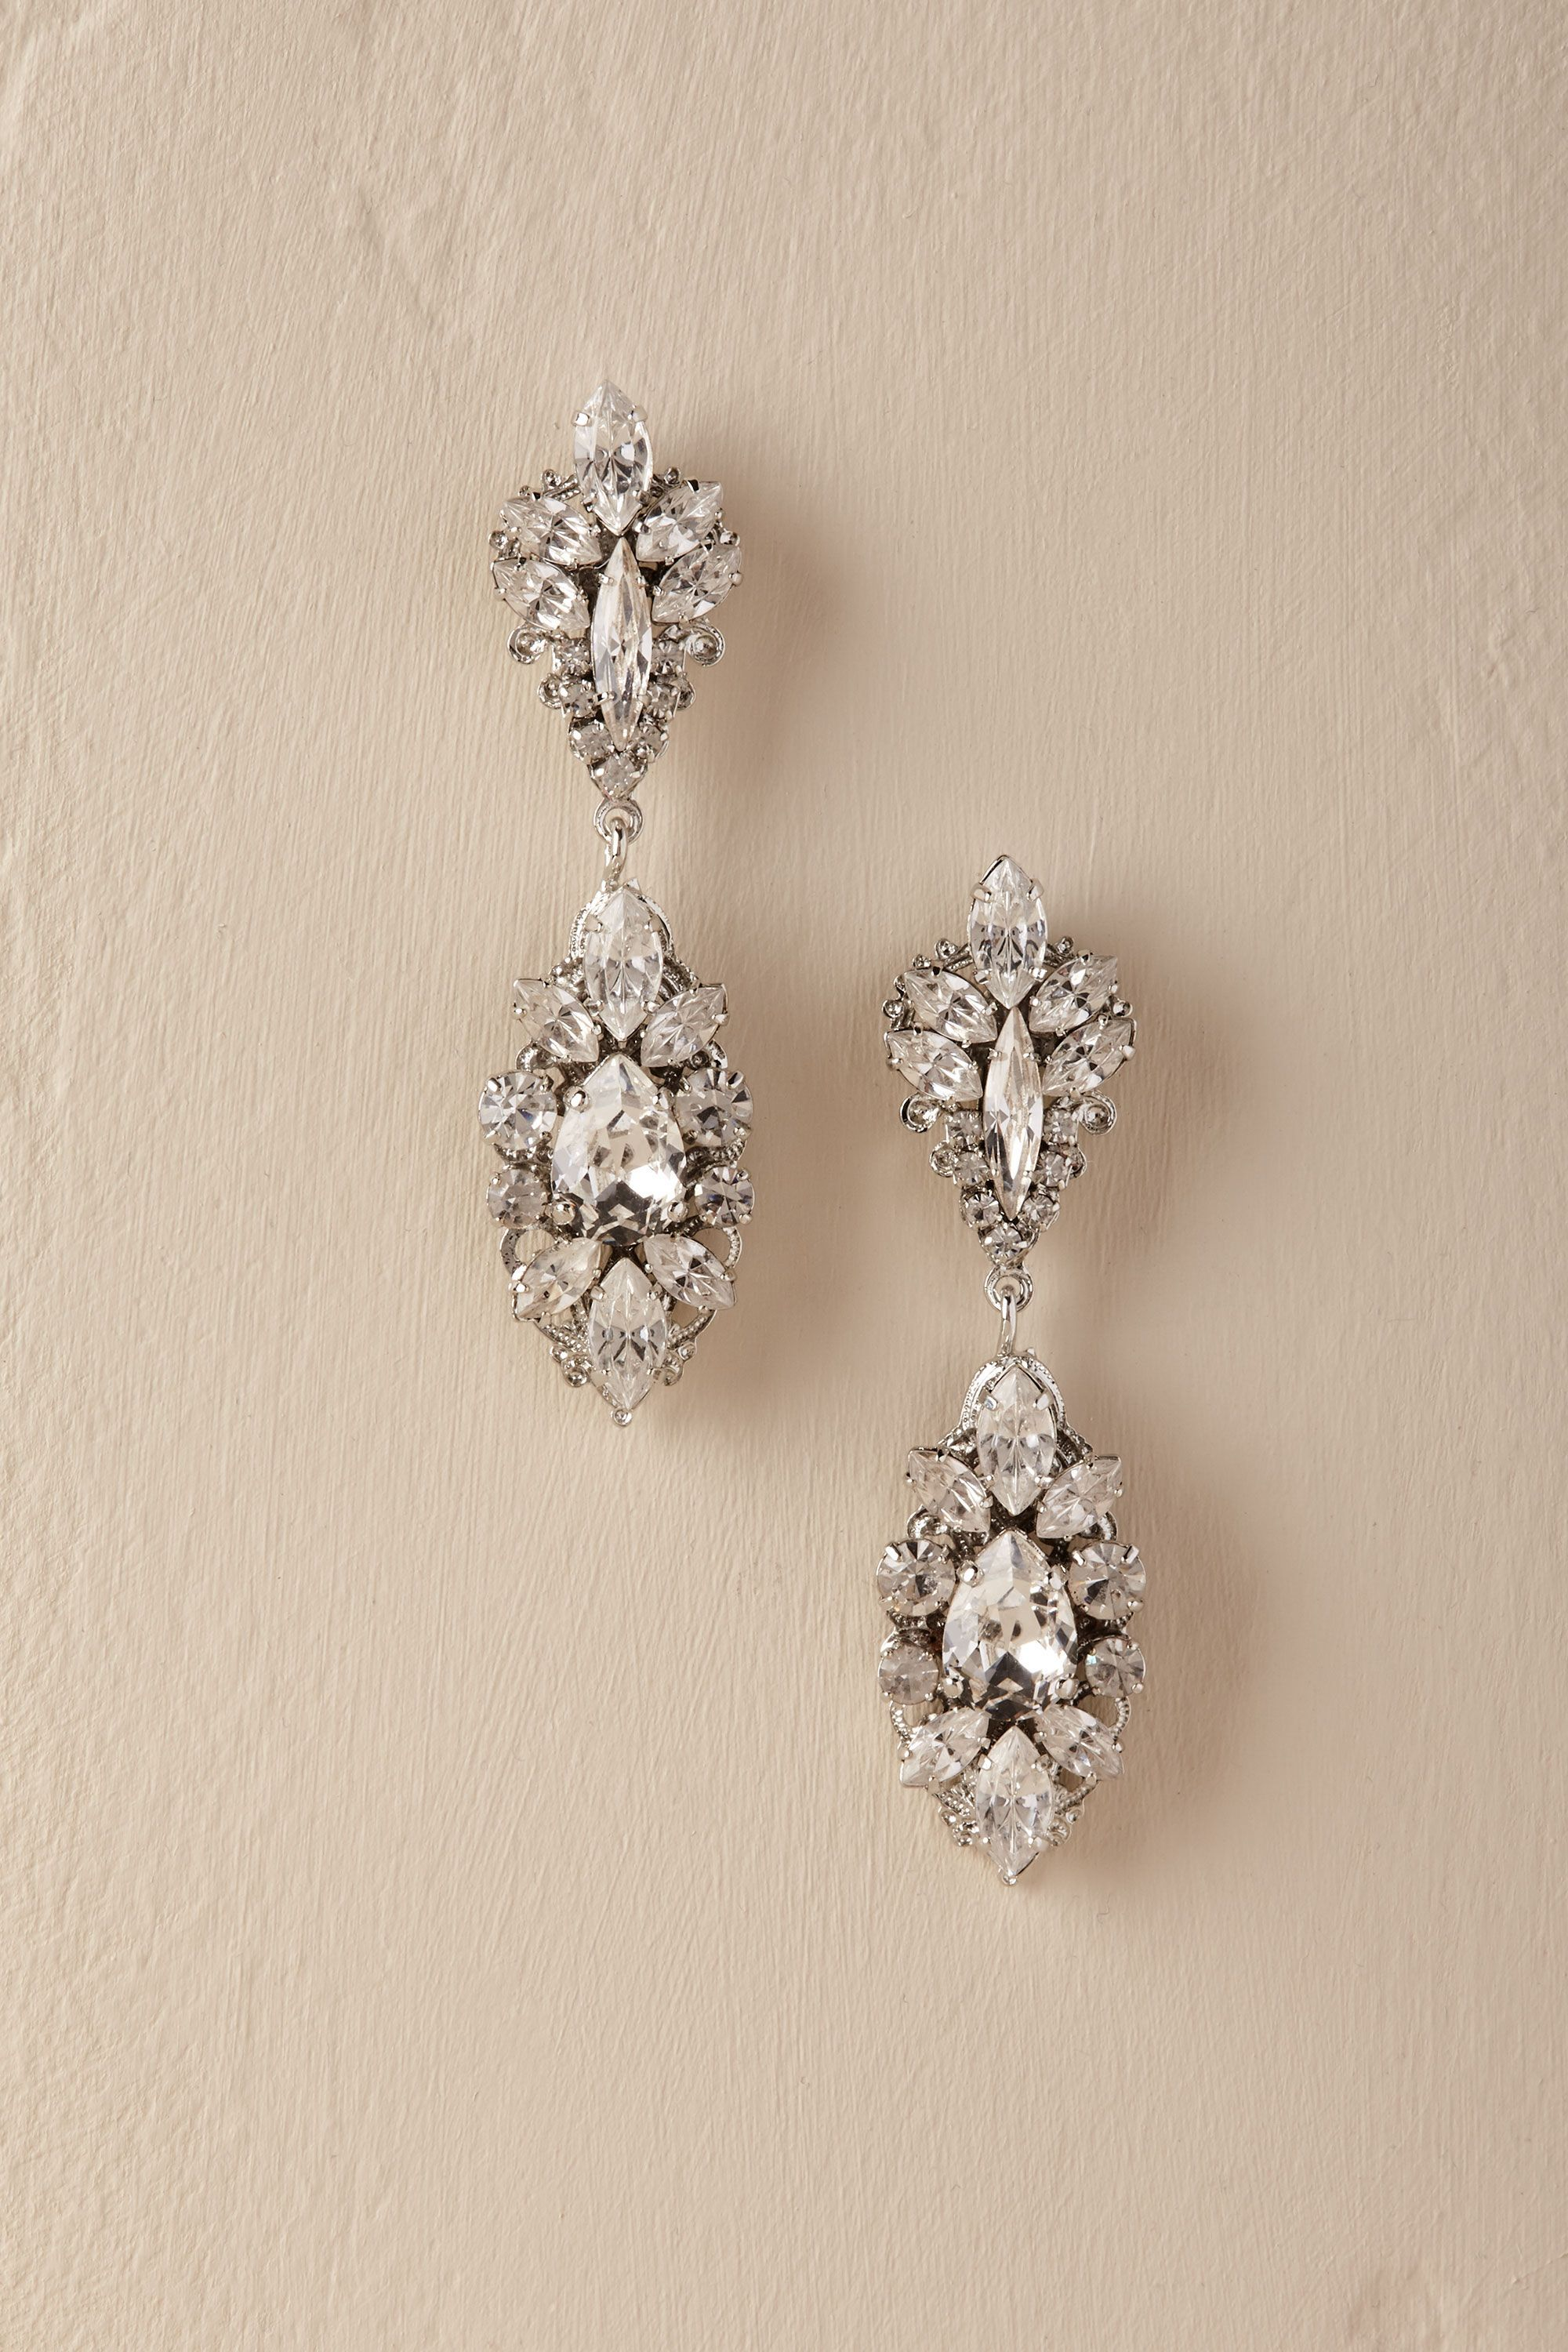 Statement Earrings For Your Wedding Day Bridal Statement Earrings Statement Earrings Wedding Swarovski Earrings Wedding